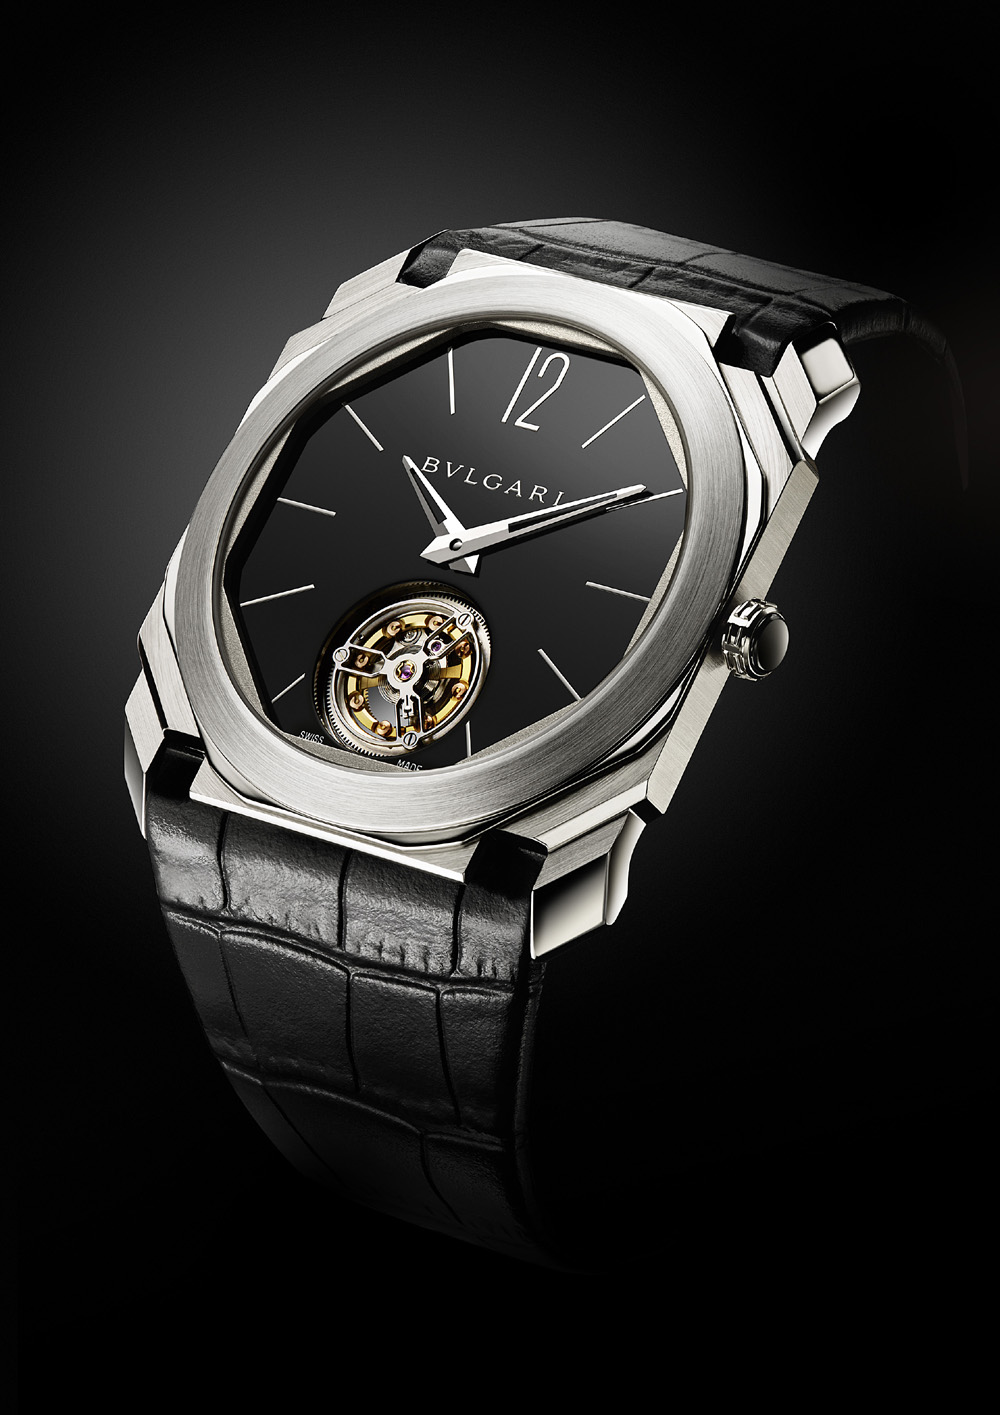 Montre Octo Finissimo Tourbillon de Bulgari